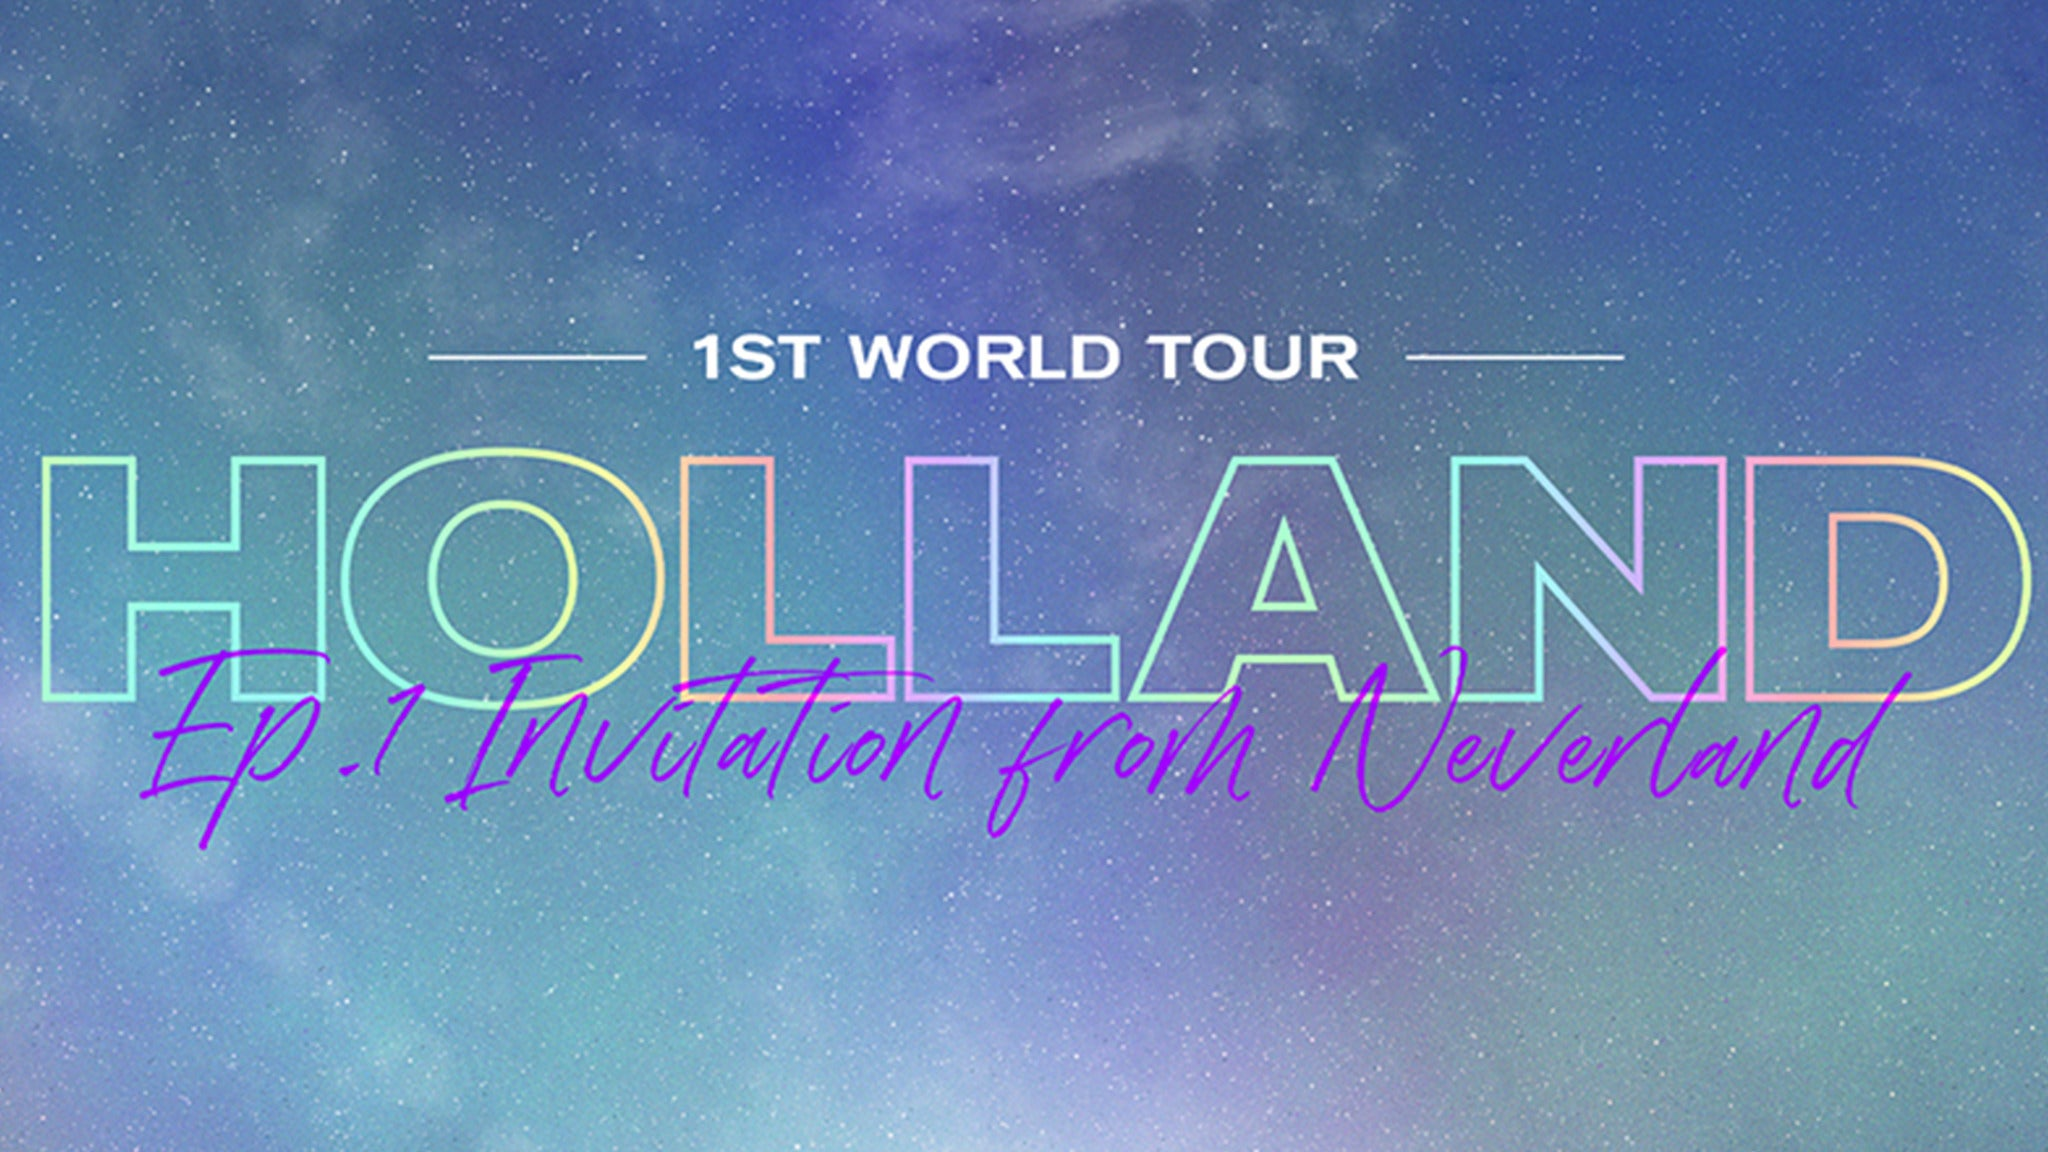 Holland 1st World Tour Ep.1: Invitation from Neverland in Europe